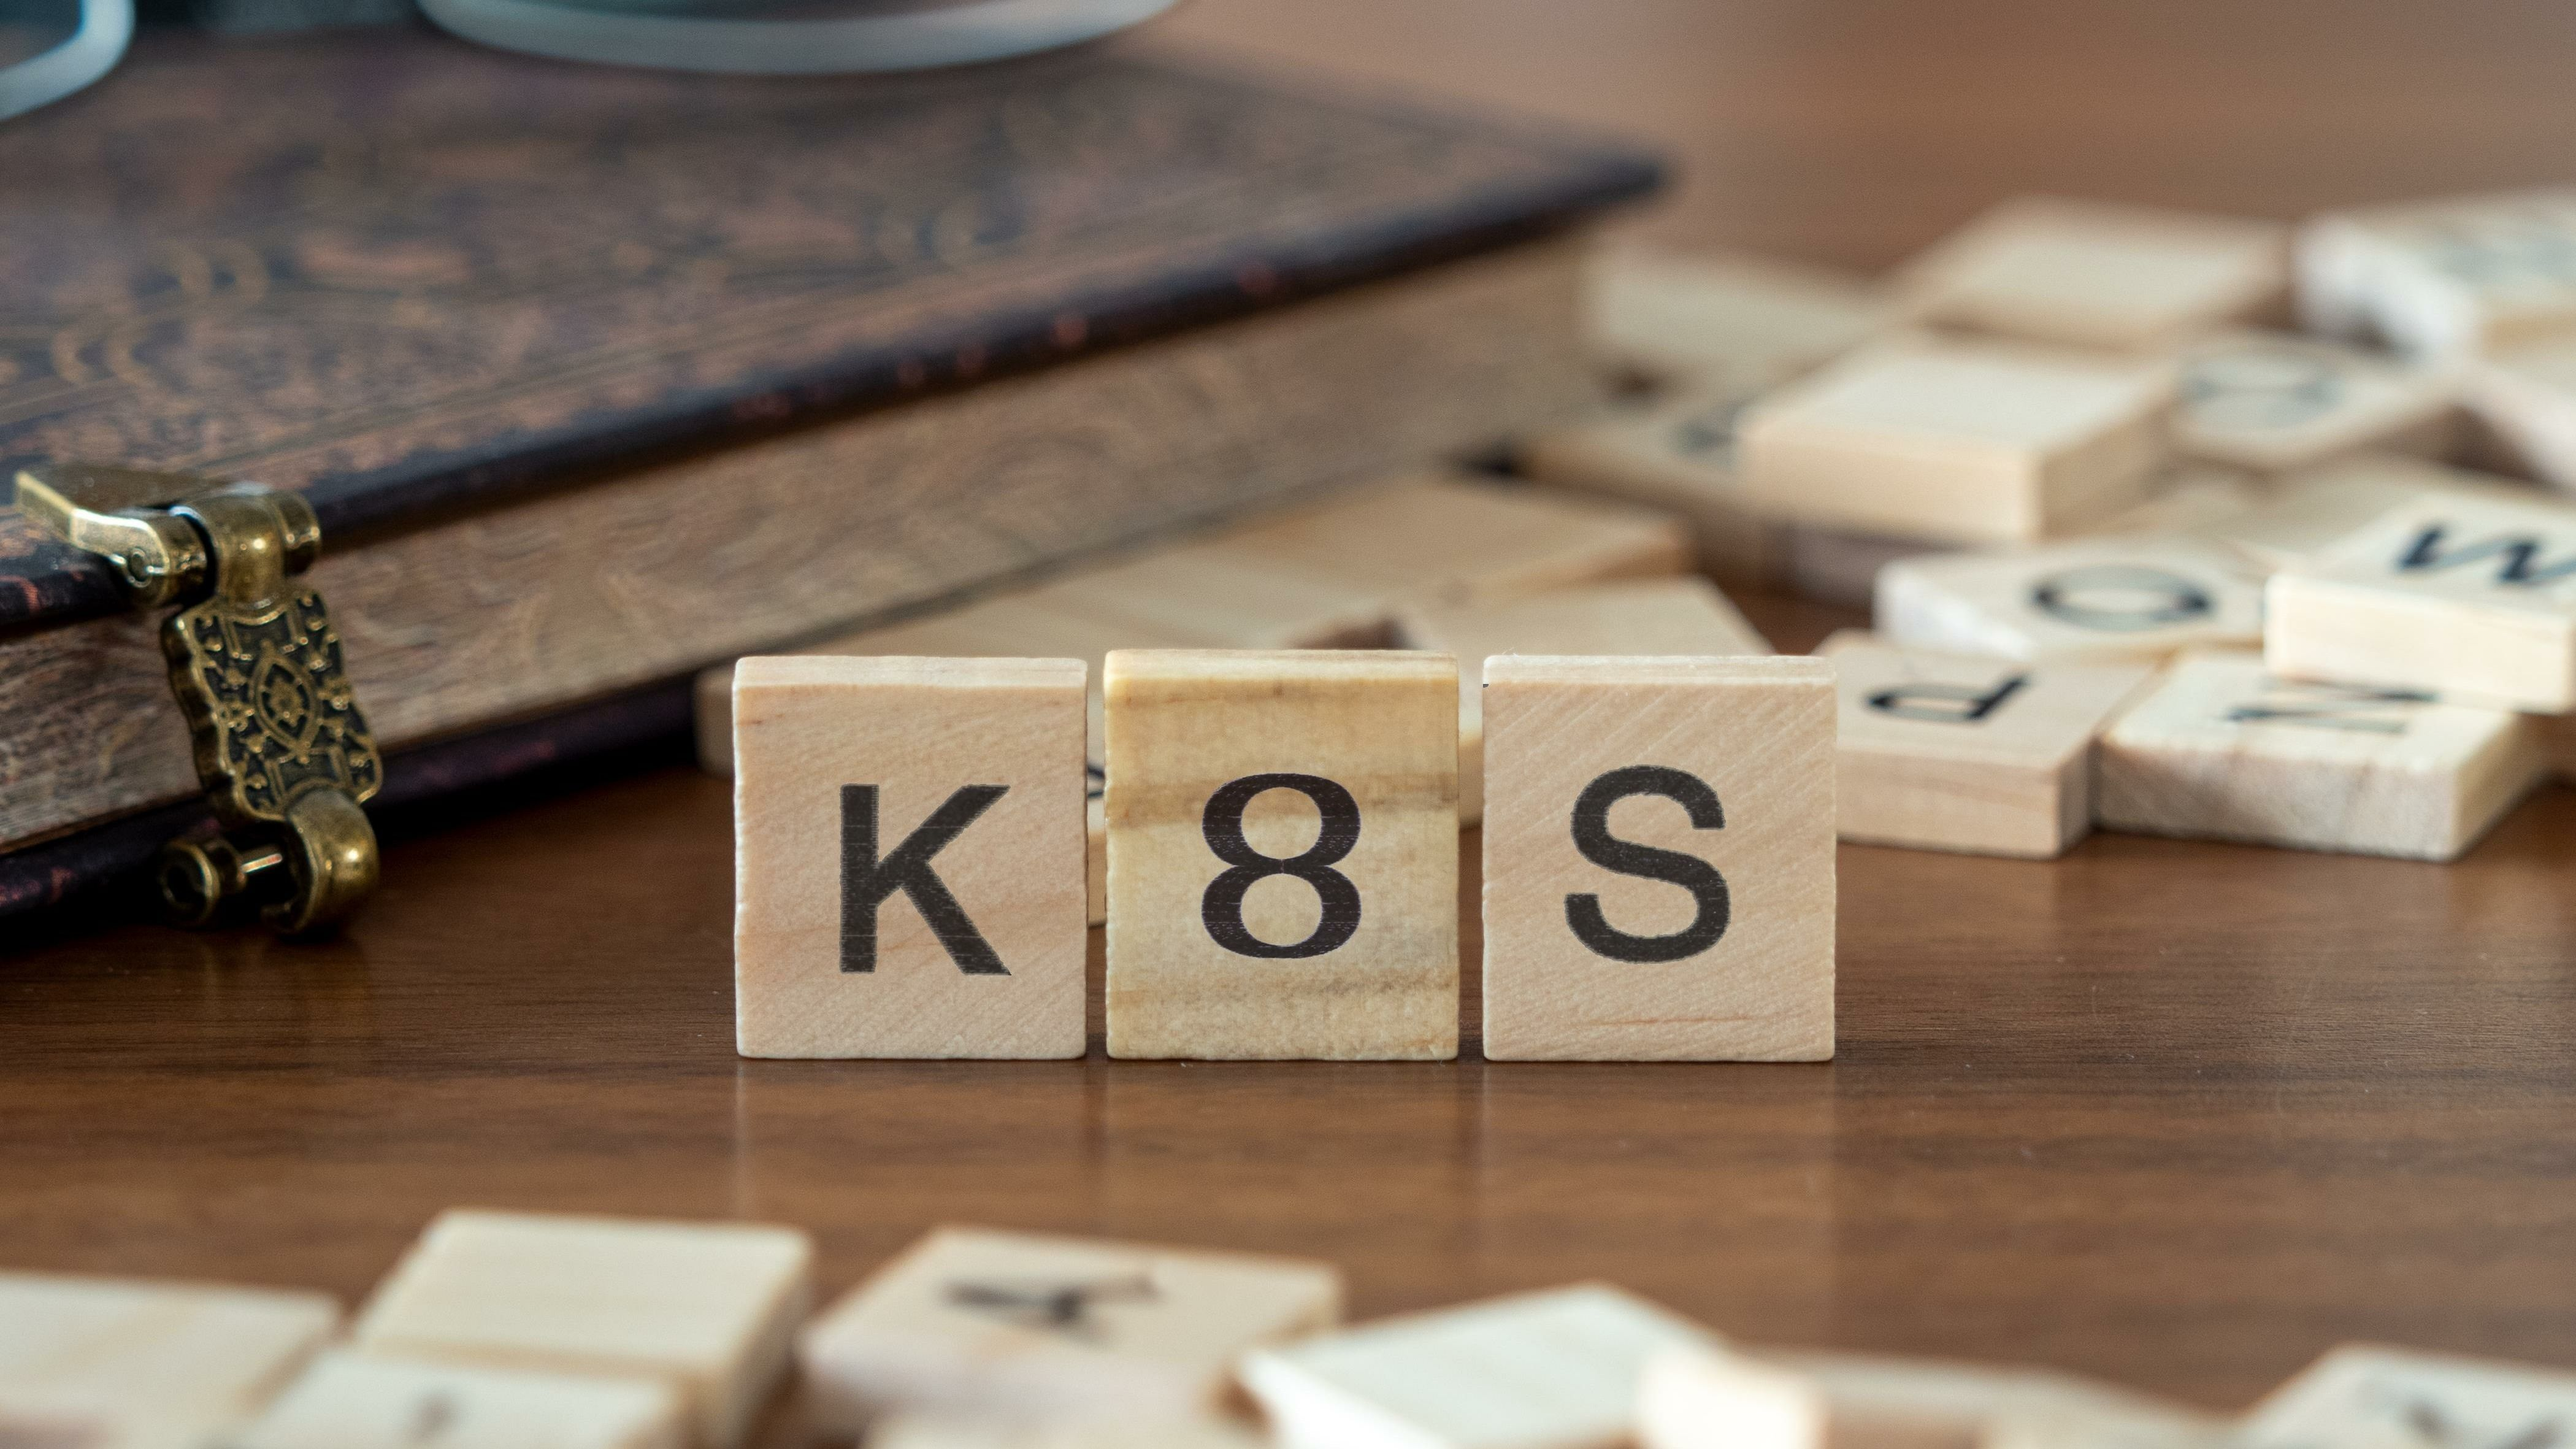 /kubernetes-readiness-probes-implementation-in-microservices-2is3122 feature image